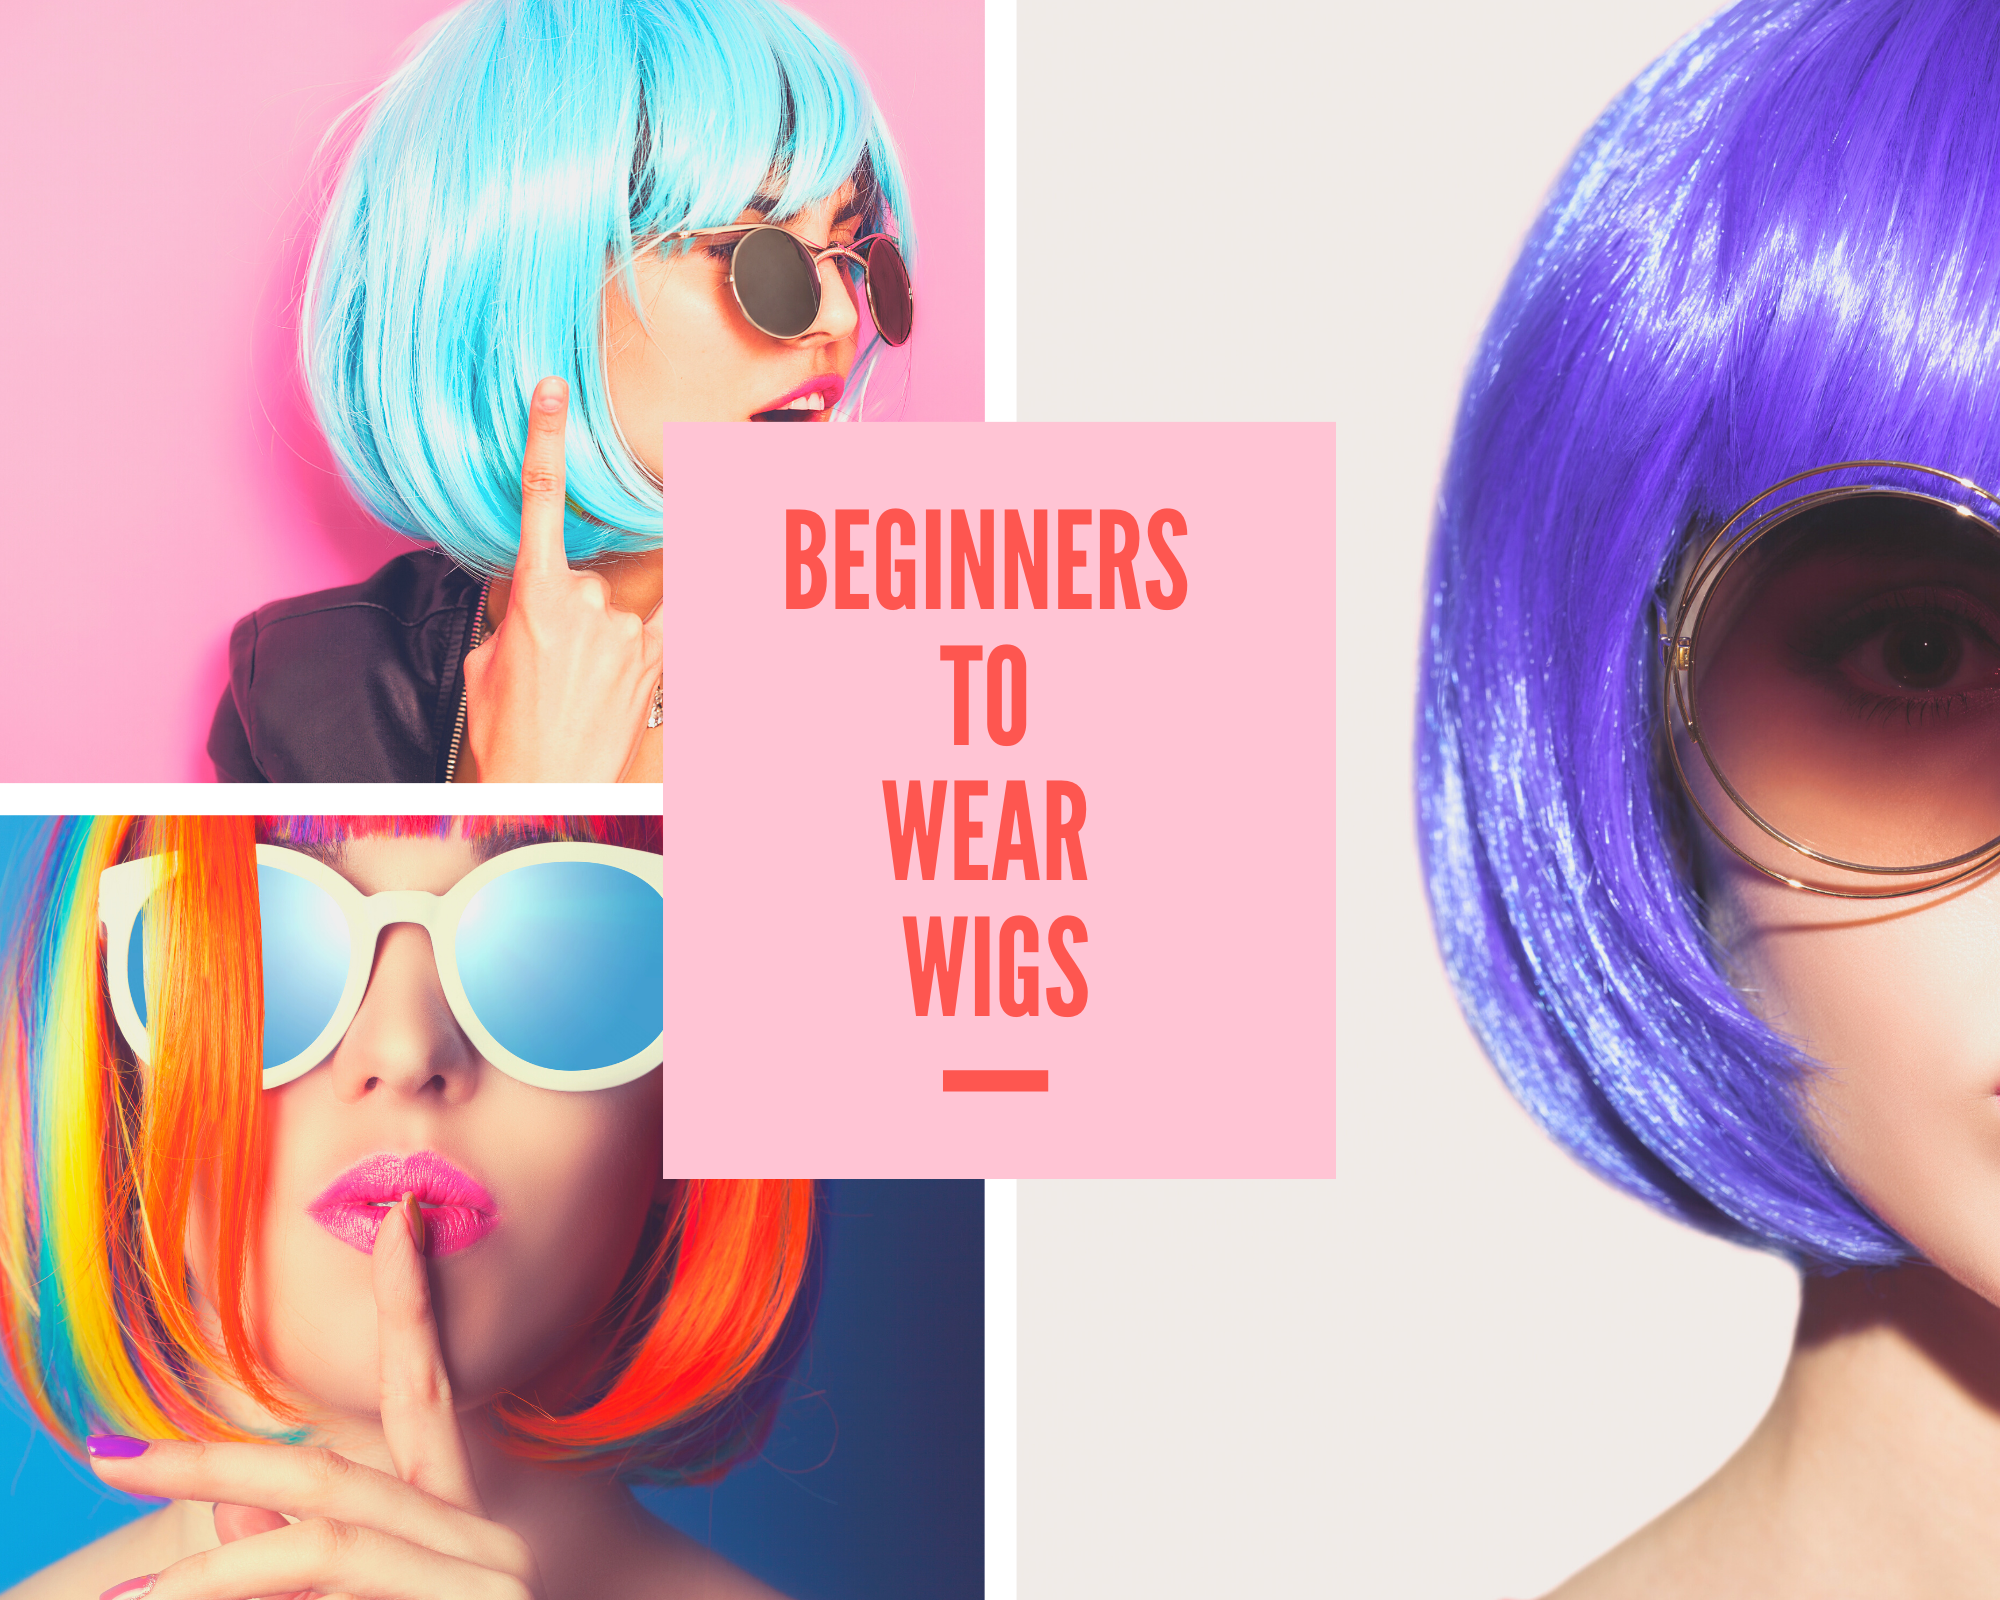 Ultimate Guide For Beginners To Wear Wigs